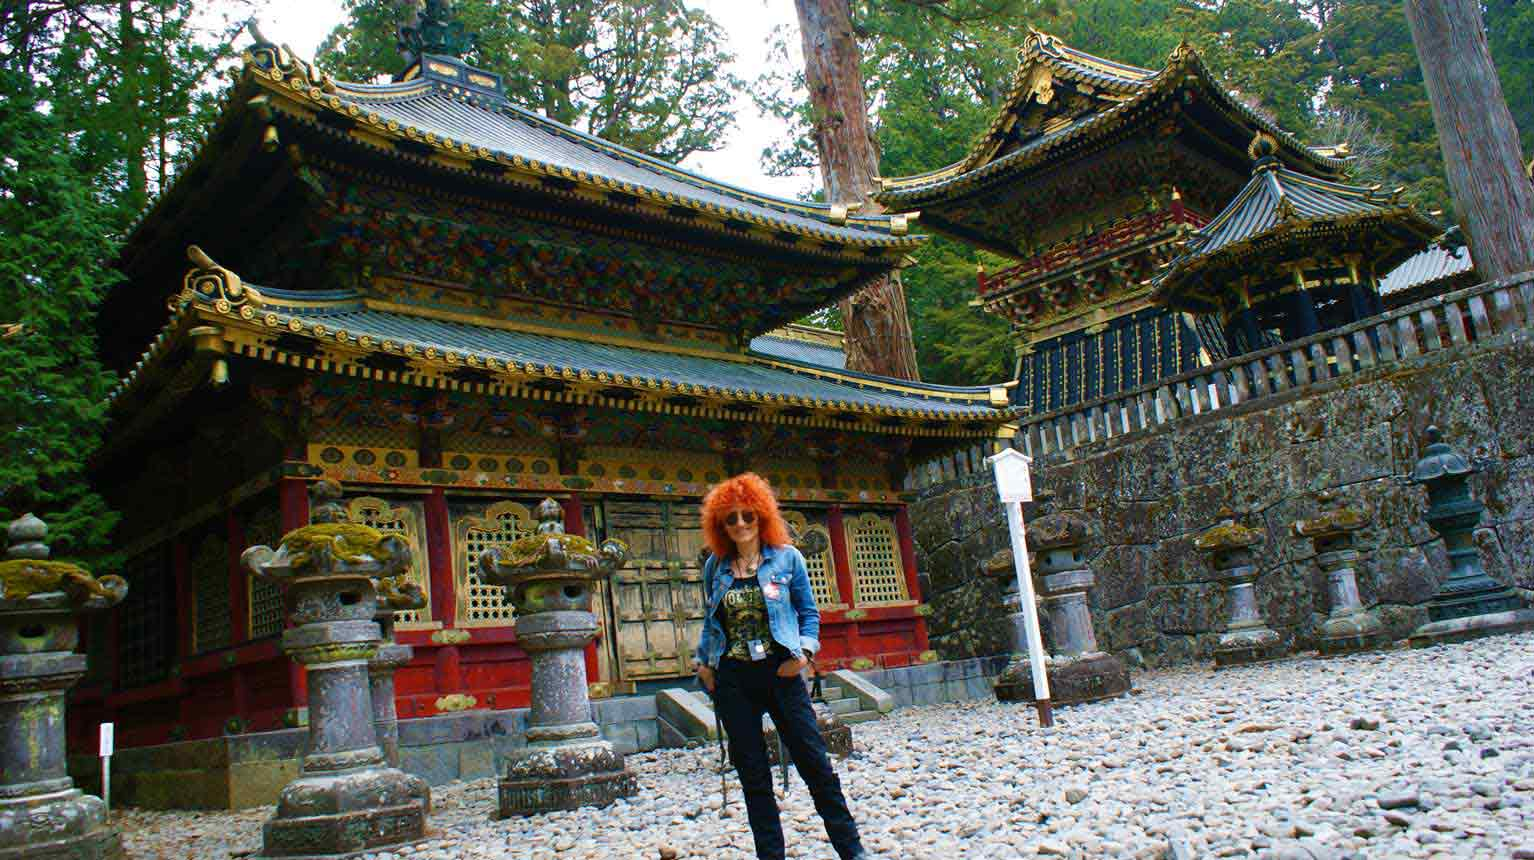 curly nomad asia japan temple smiling photo